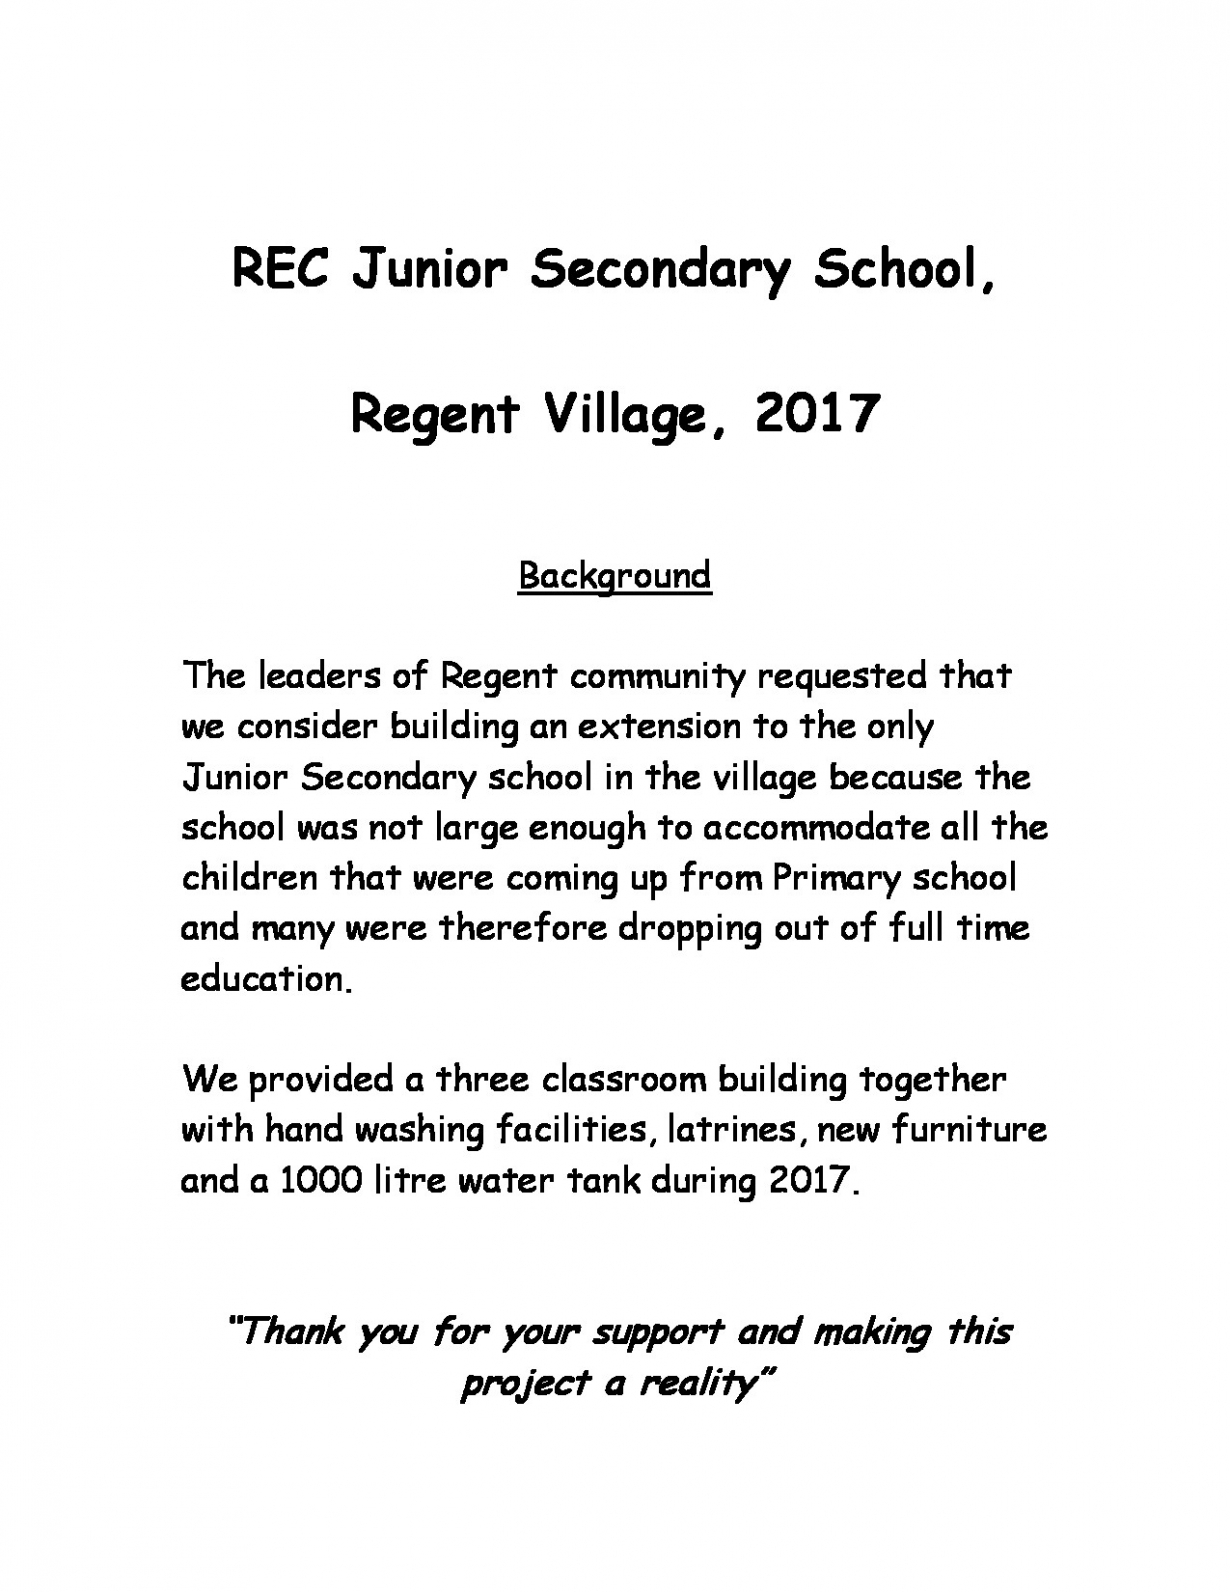 REC Junior Seconday Summary